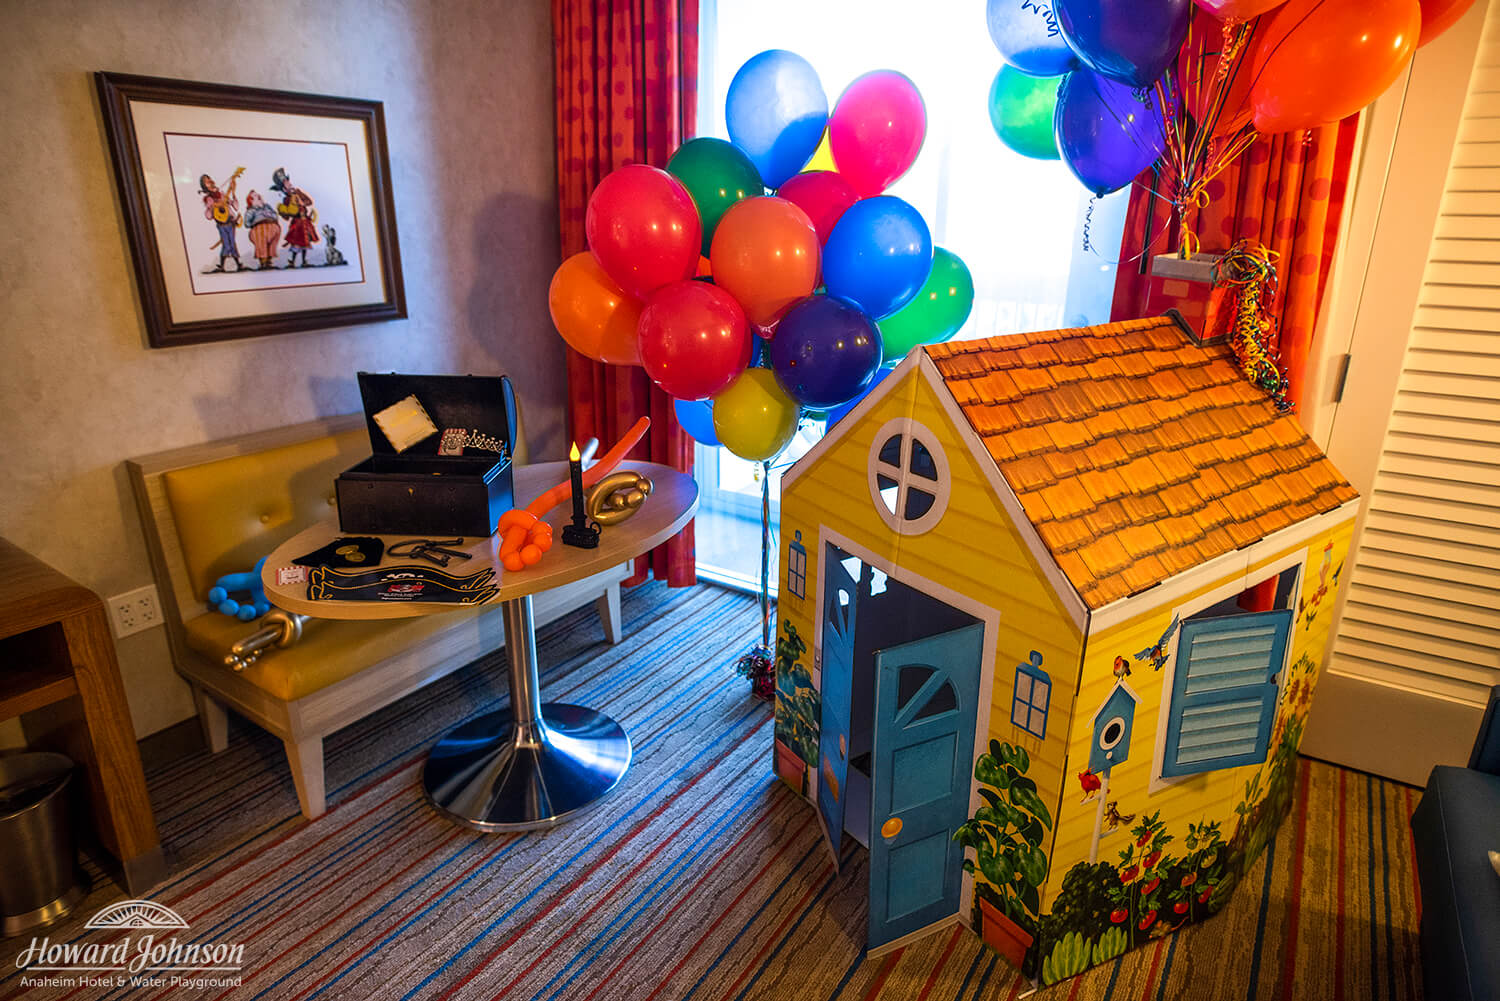 an UP movie themed hotel room features balloons and a cardboard house